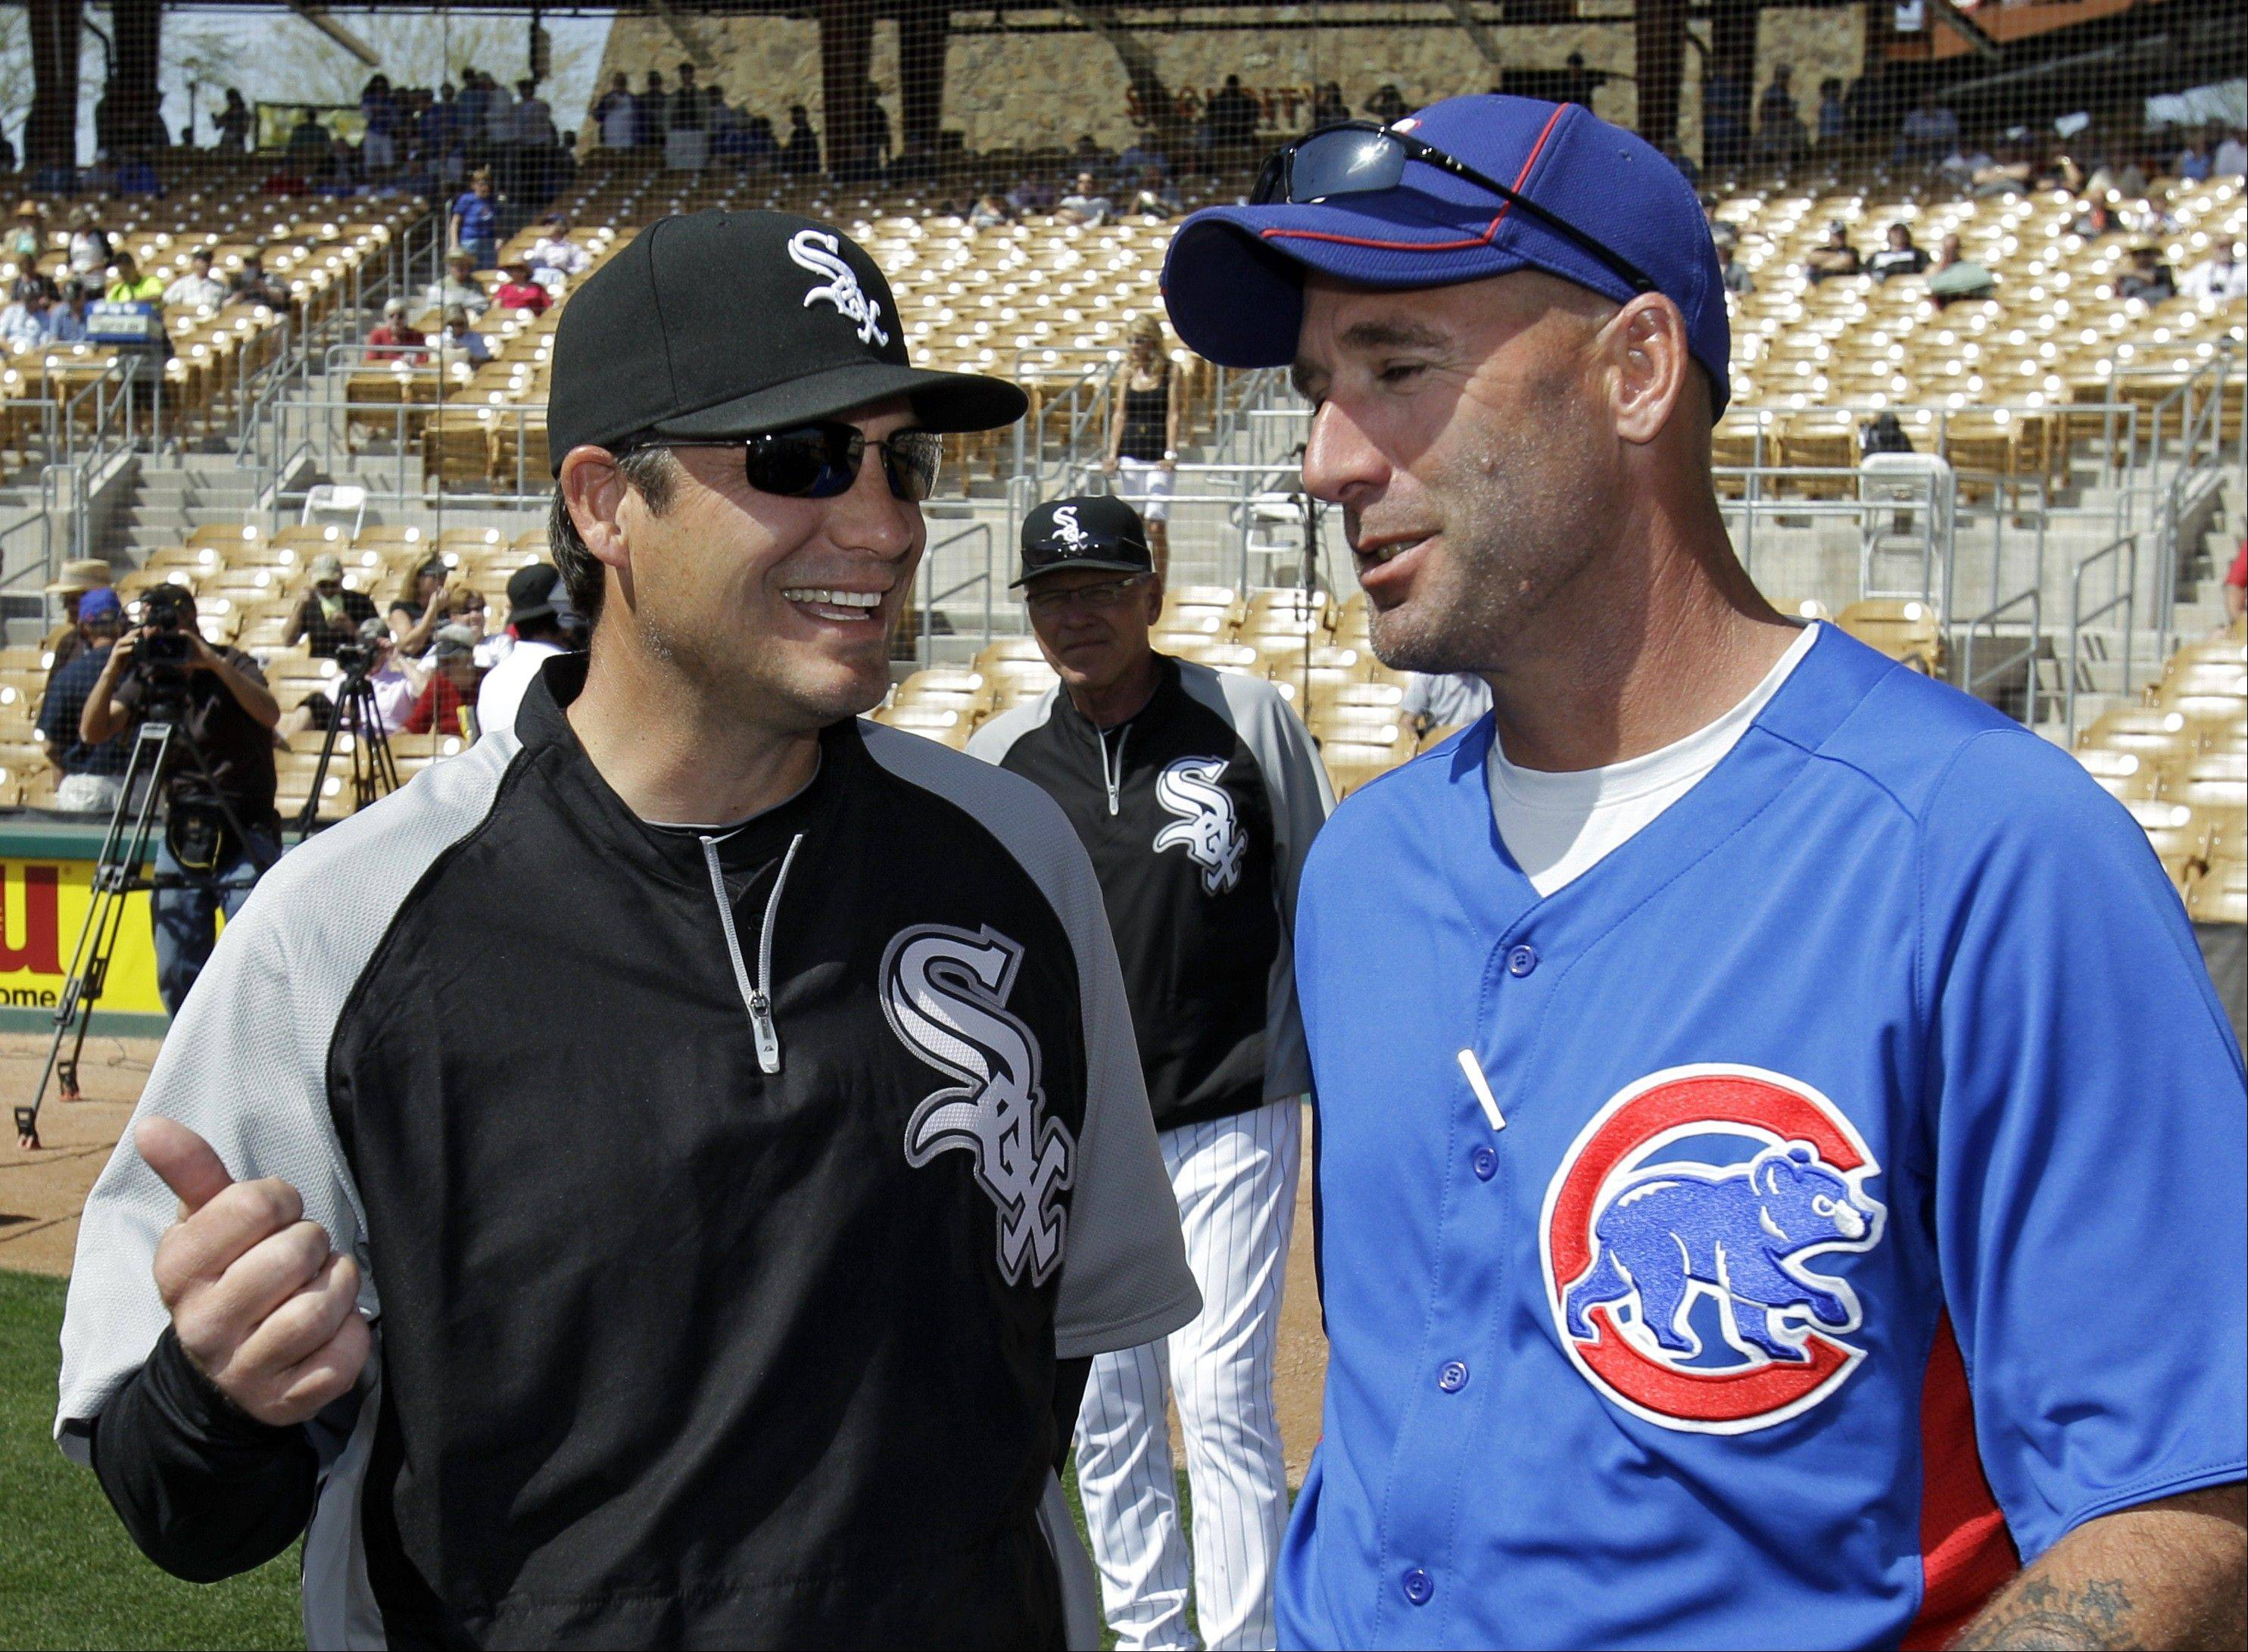 Chicago White Sox manager Robin Ventura, left, talks with Chicago Cubs manager Dale Sveum before a spring training baseball game Friday, March 9, 2012, in Glendale, Ariz.